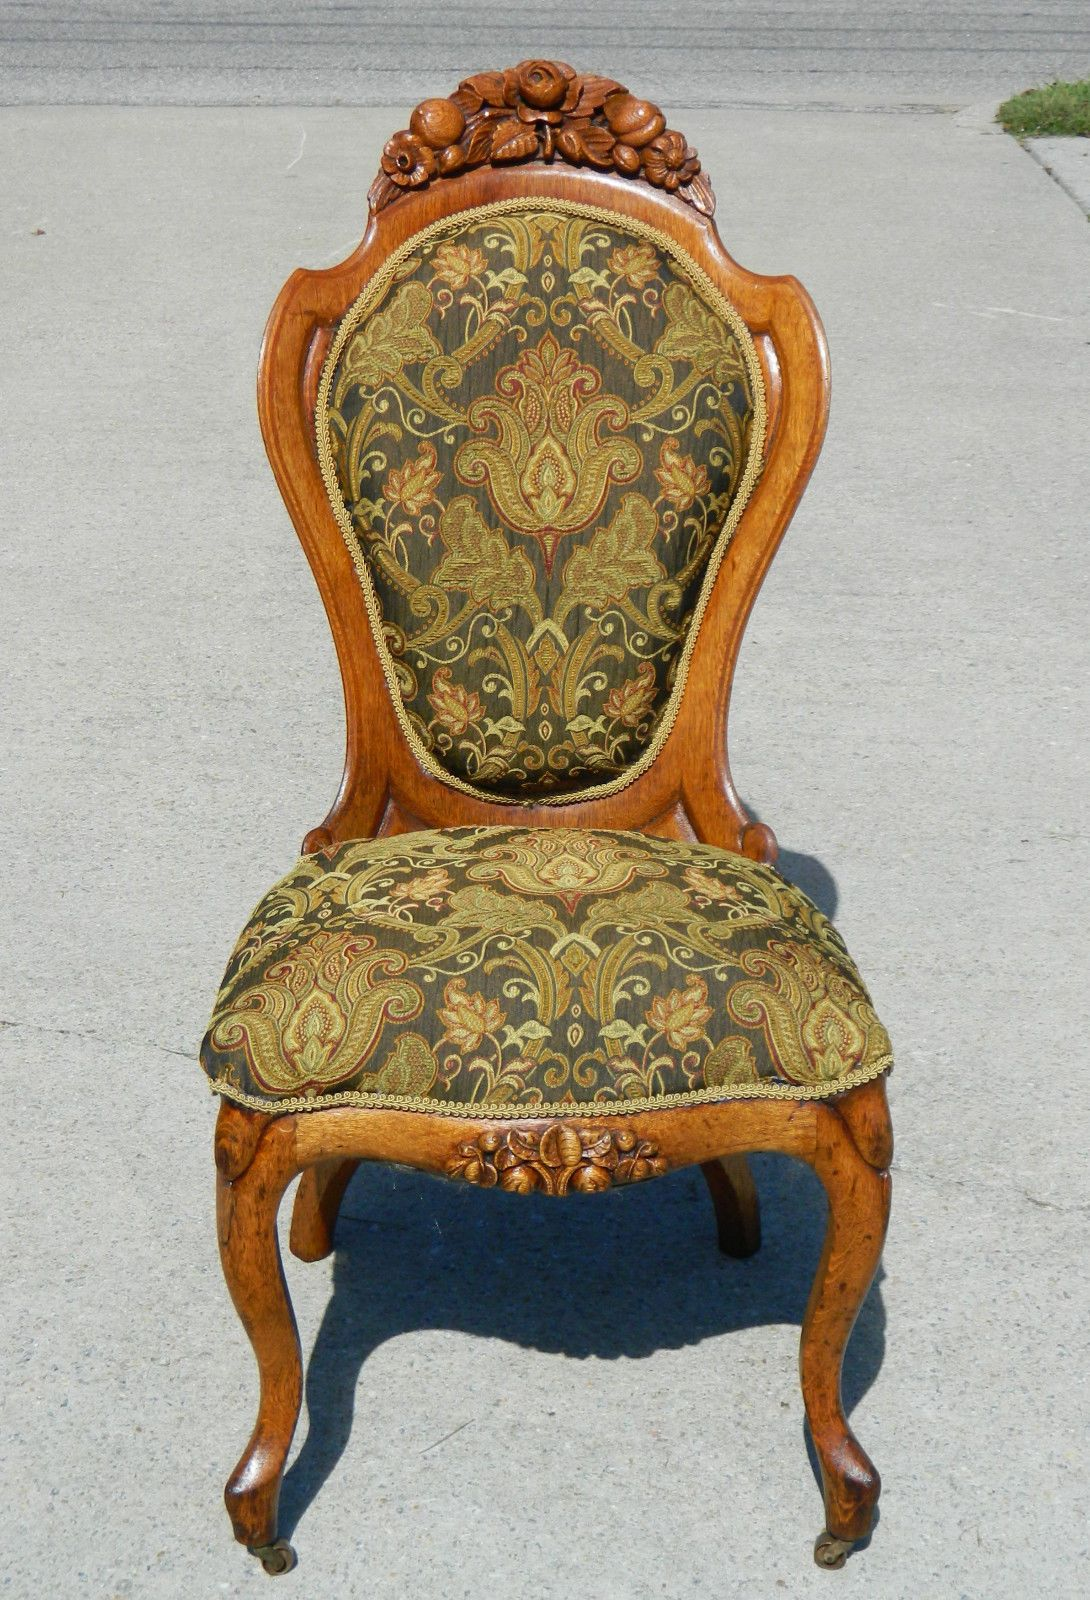 gentlemans chair chill out tiger oak belter laminated parlor chairs ladies ebay